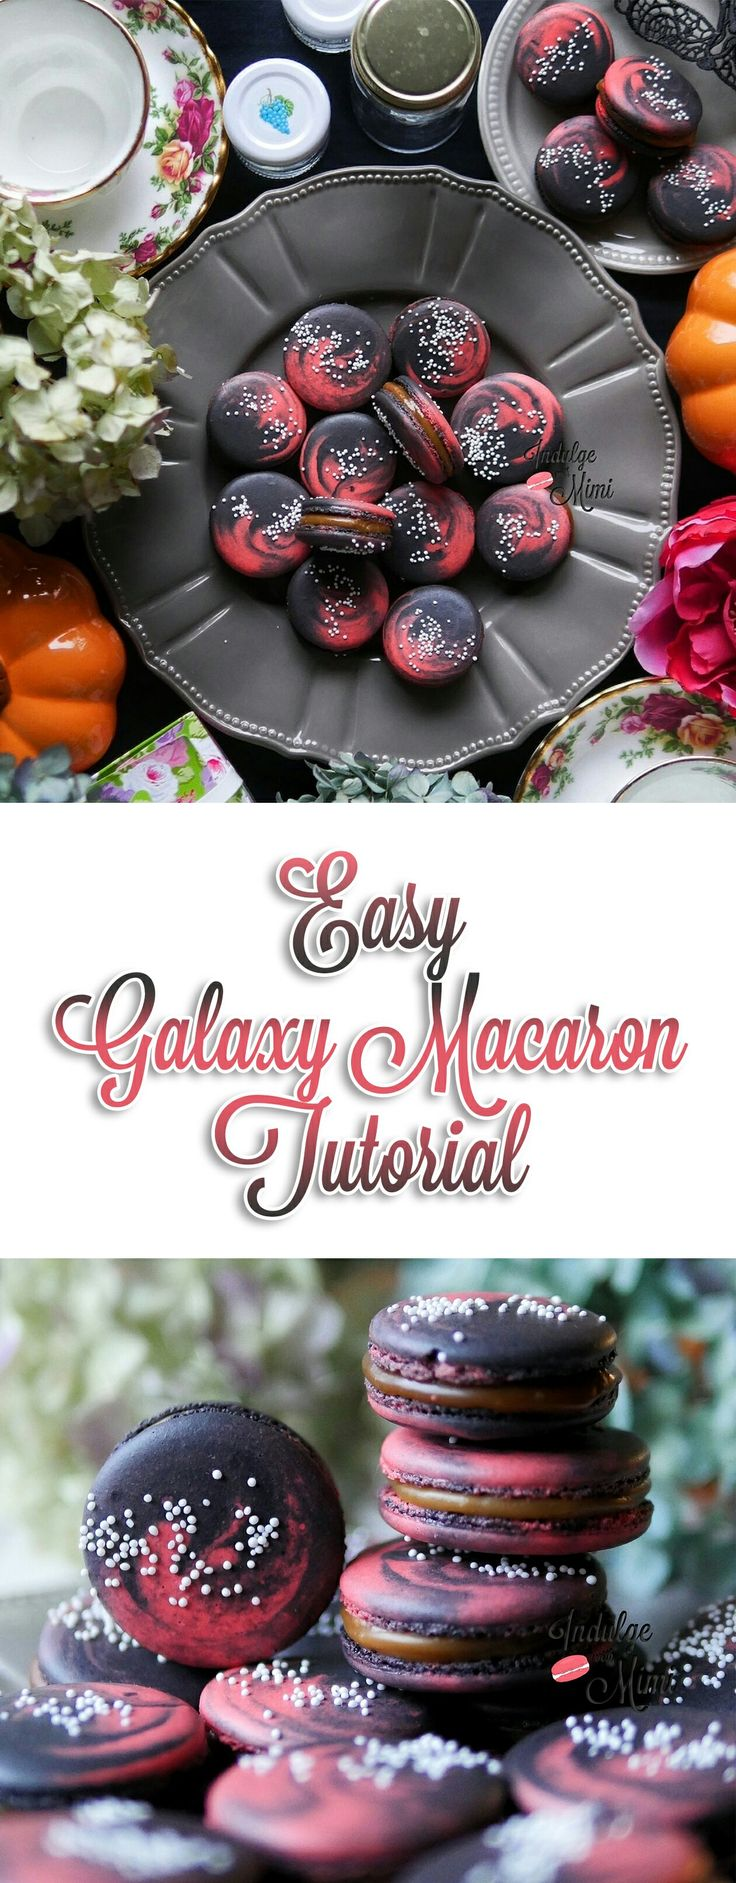 Easy tutorial on Multi Colored Galaxy Macarons using Indulge with Mimi's Best Macaron Recipe